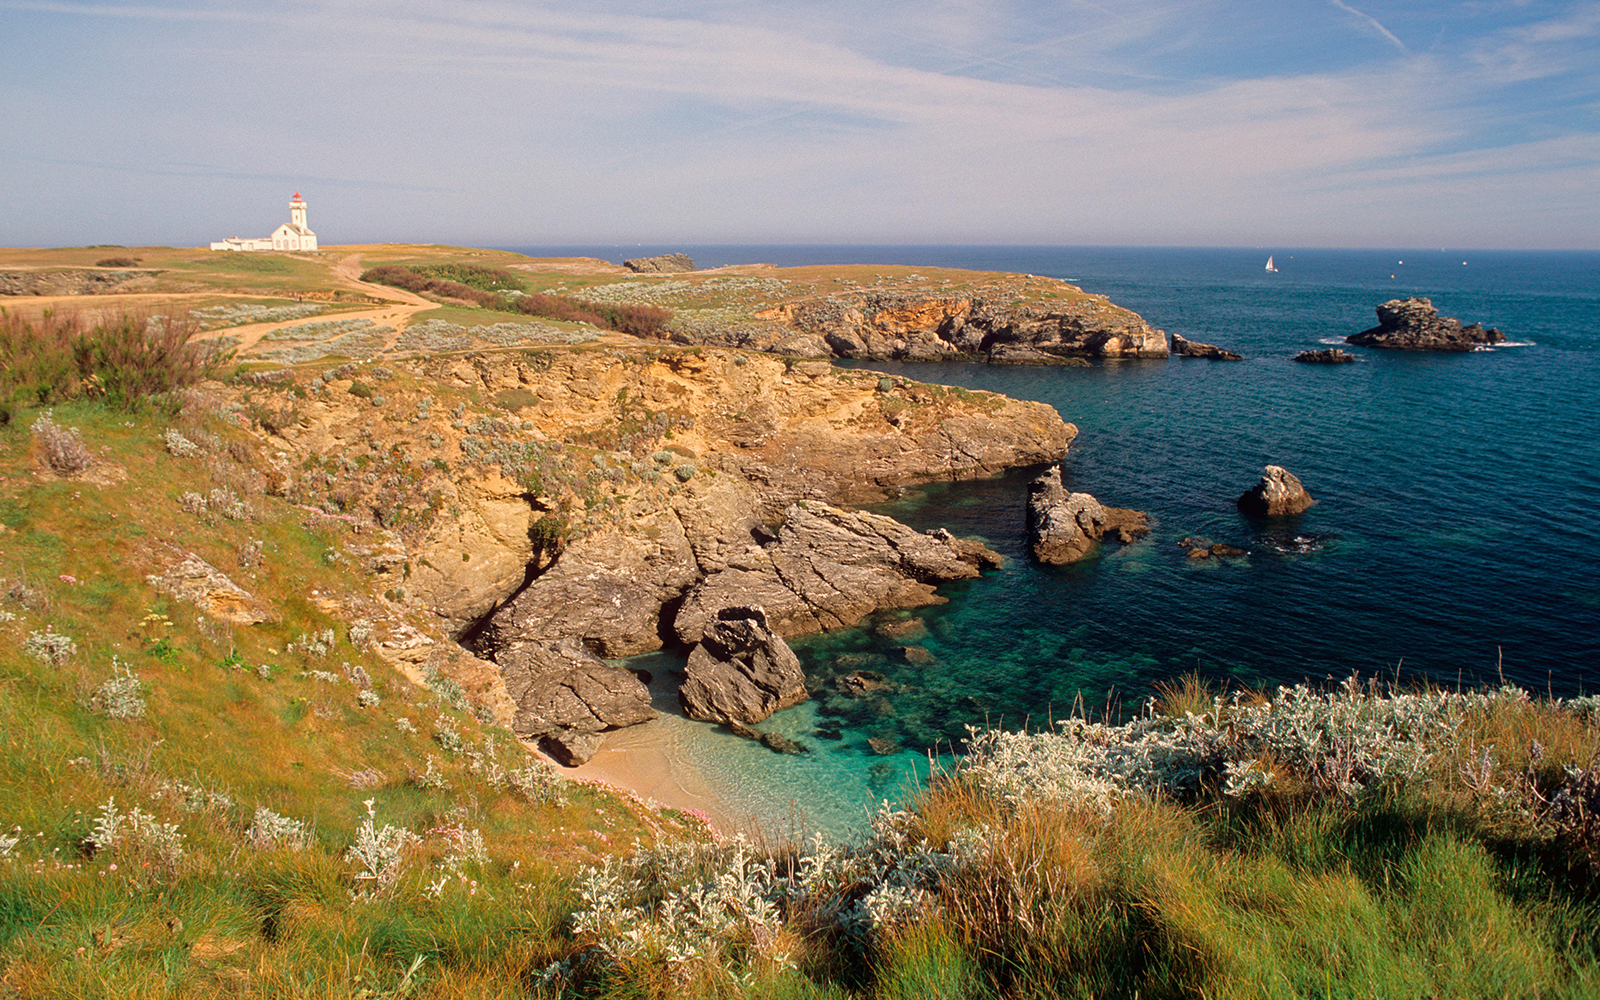 Best Beaches in France: La Pointe des Poulains, Belle-Île-en-Mer